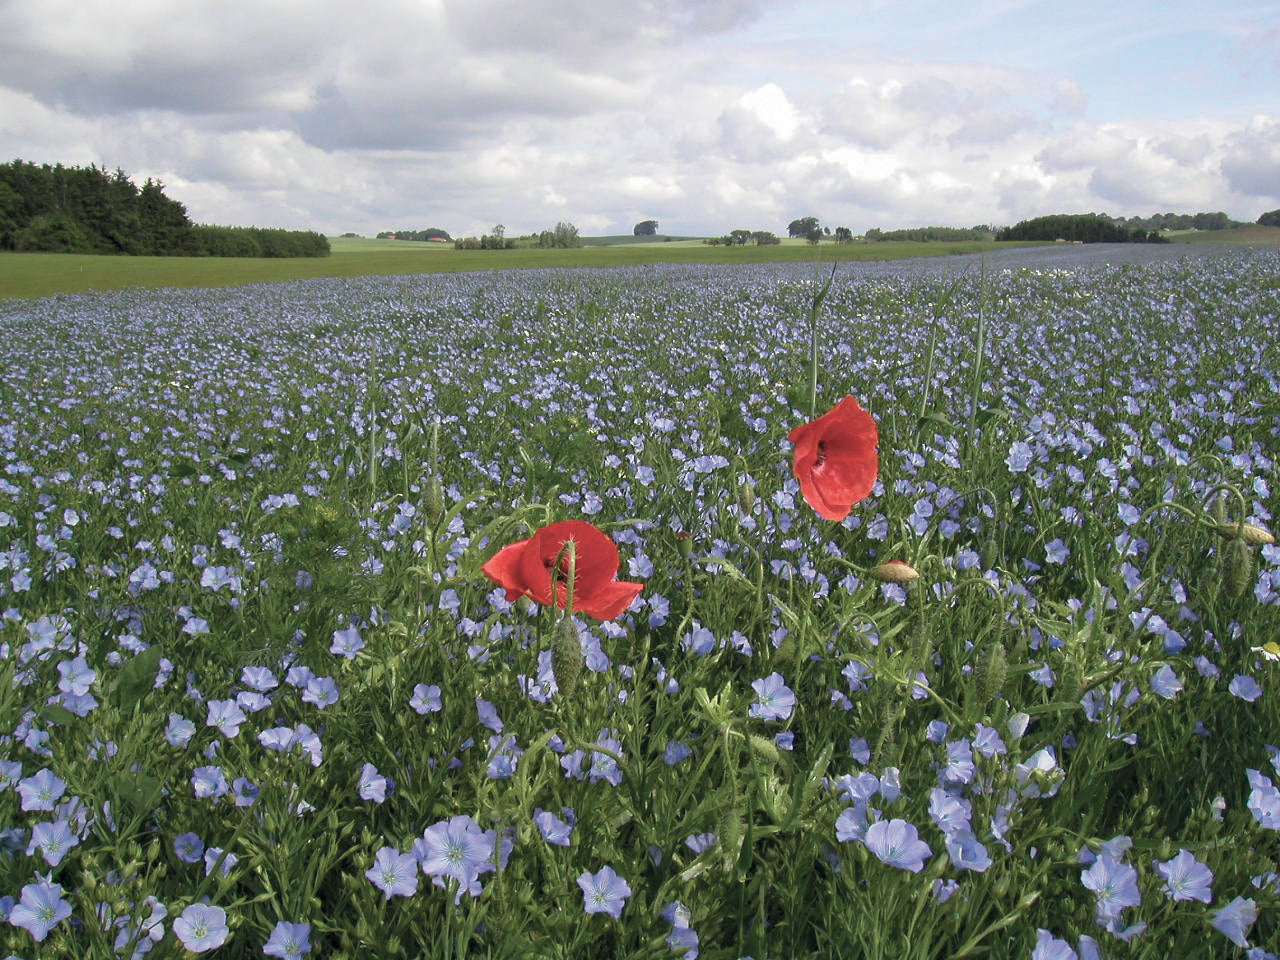 Swedish flax field in bloom.